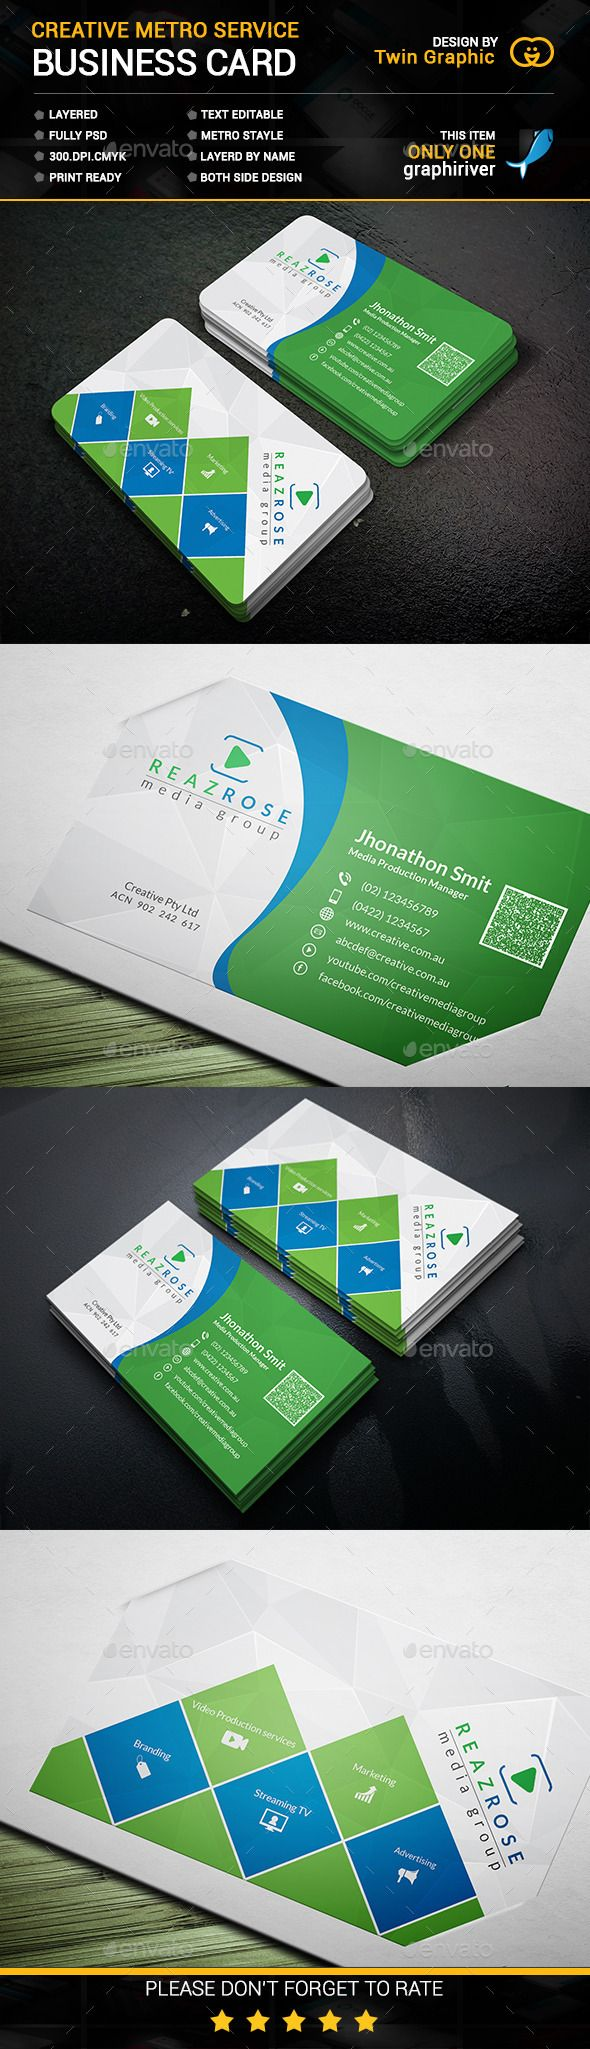 Creative Metro Service Business Card Business Cards Creative Business Card Photoshop Business Card Mock Up